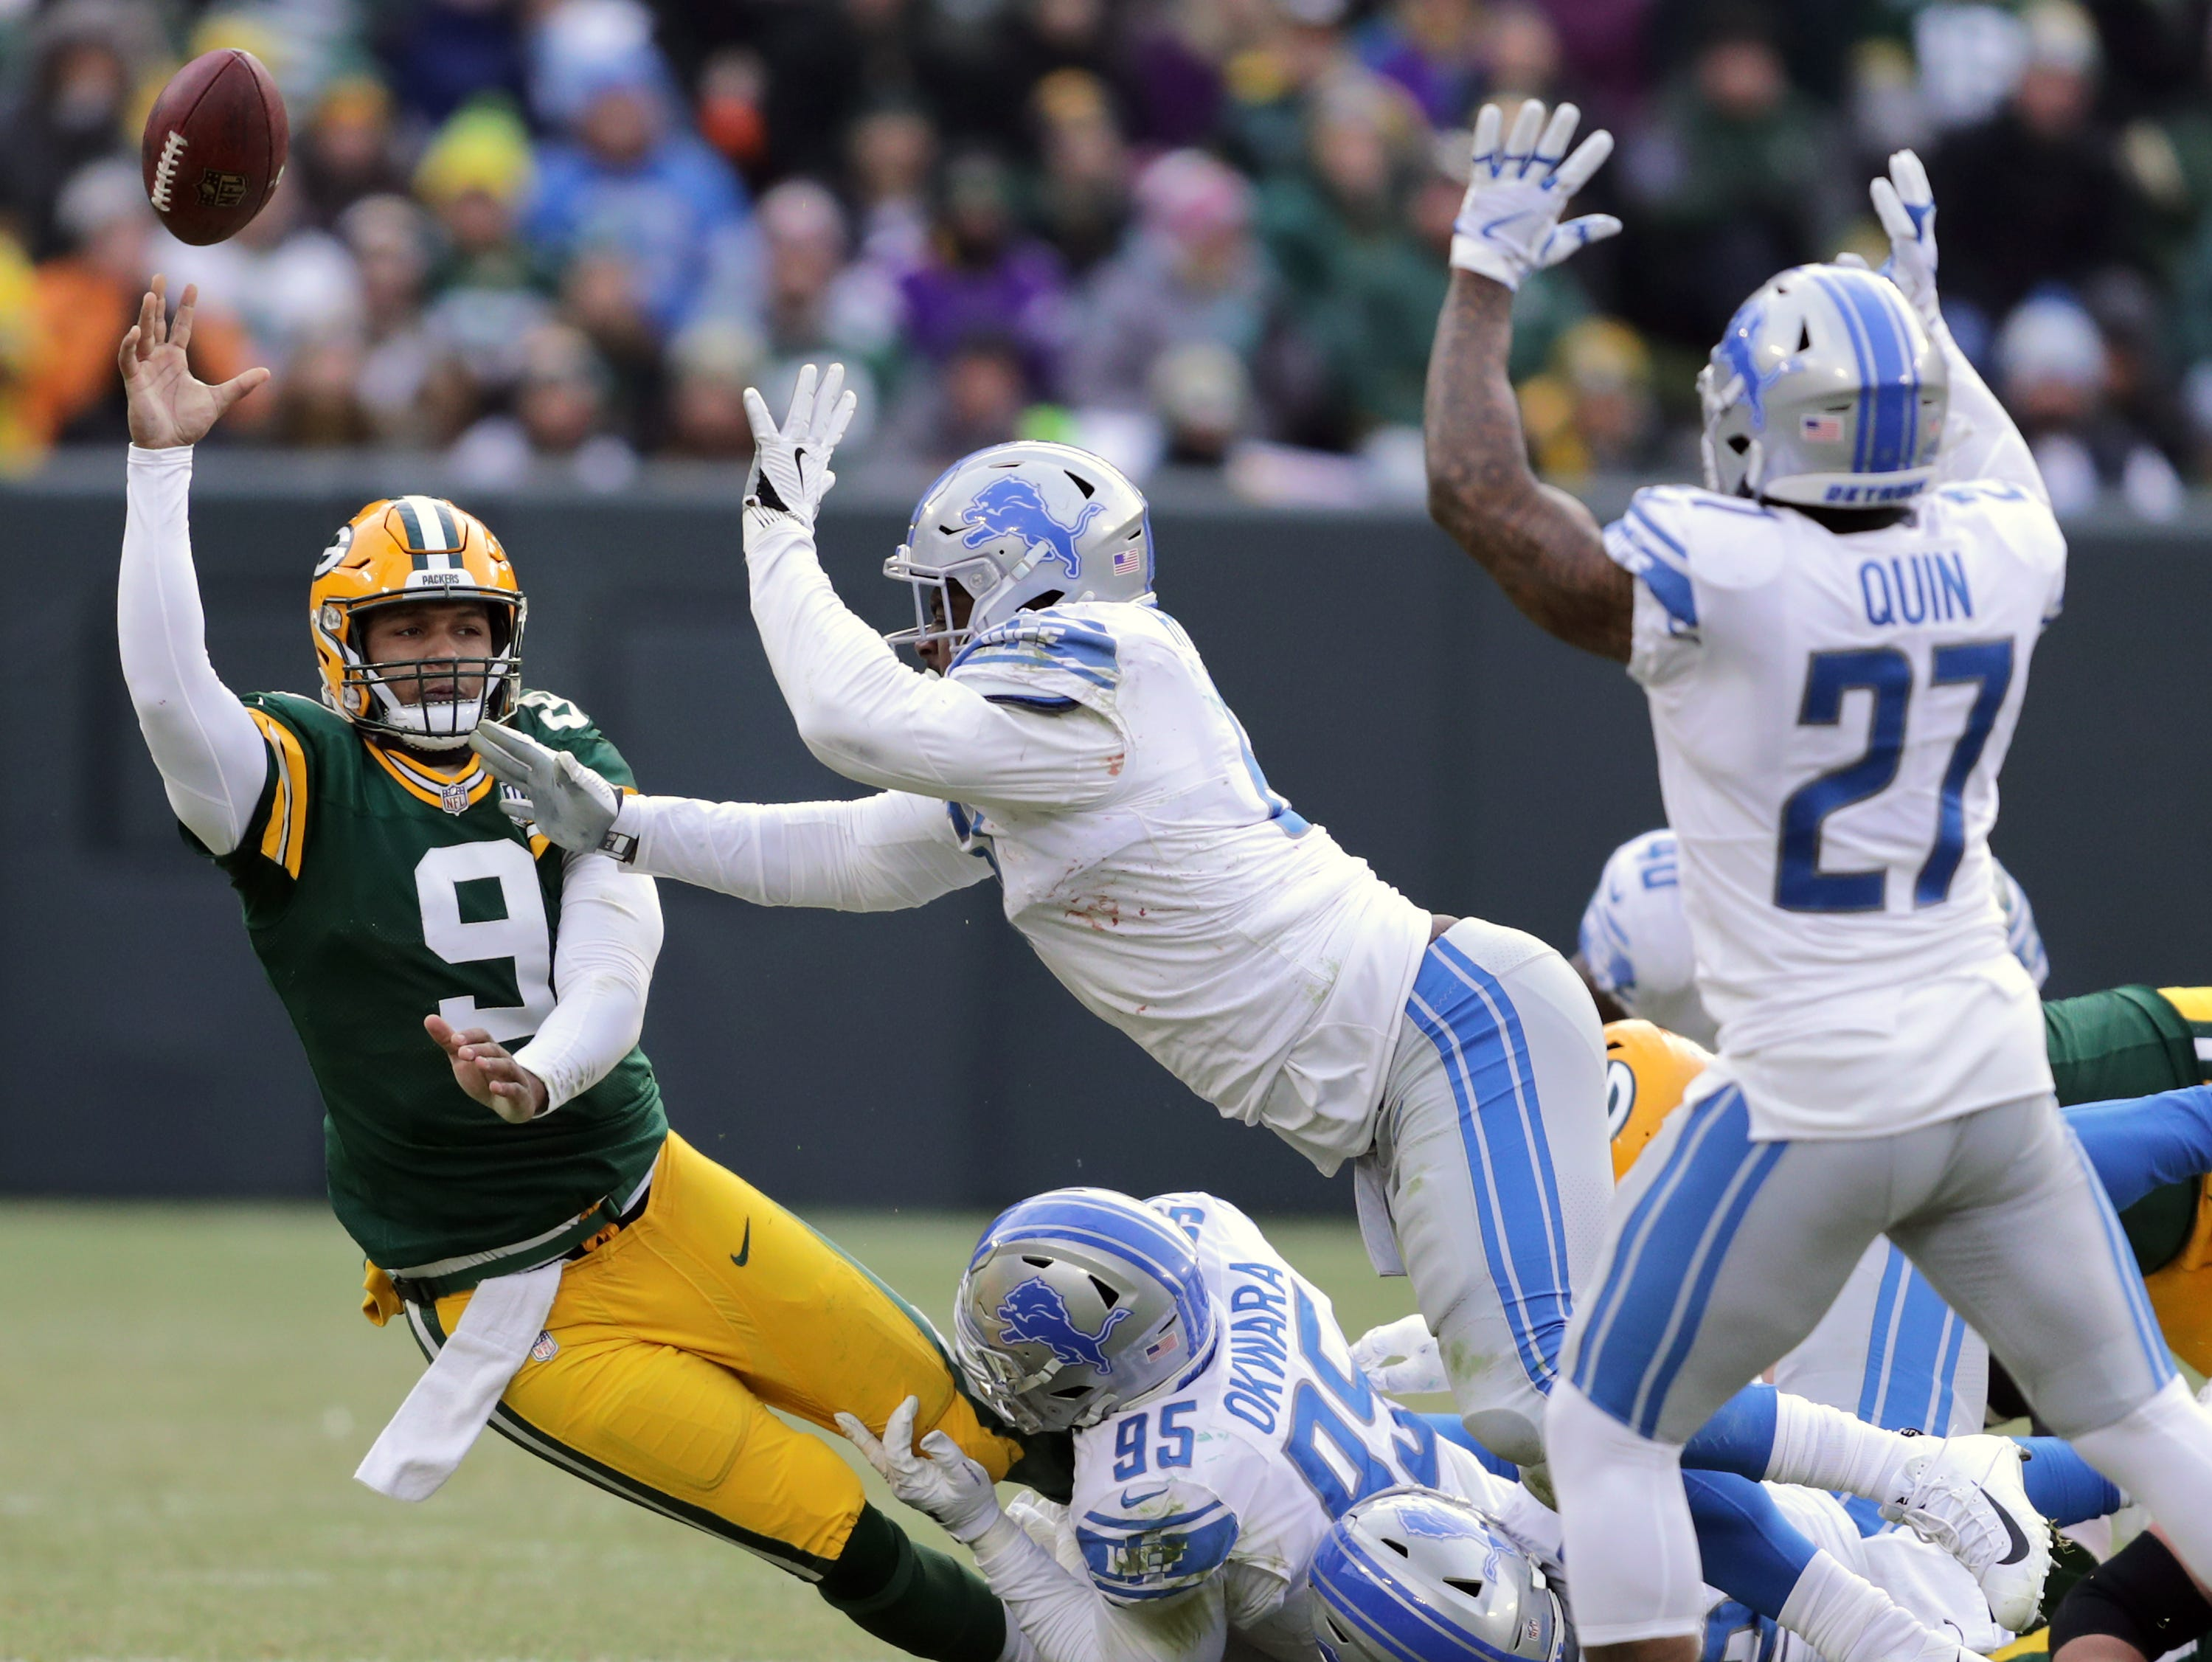 Green Bay Packers quarterback DeShone Kizer throws a fourth quarter interception against the Detroit Lions during their football game on Sunday, December 30, 2018, at Lambeau Field in Green Bay, Wis. Detroit defeated Green Bay 31 to 0.